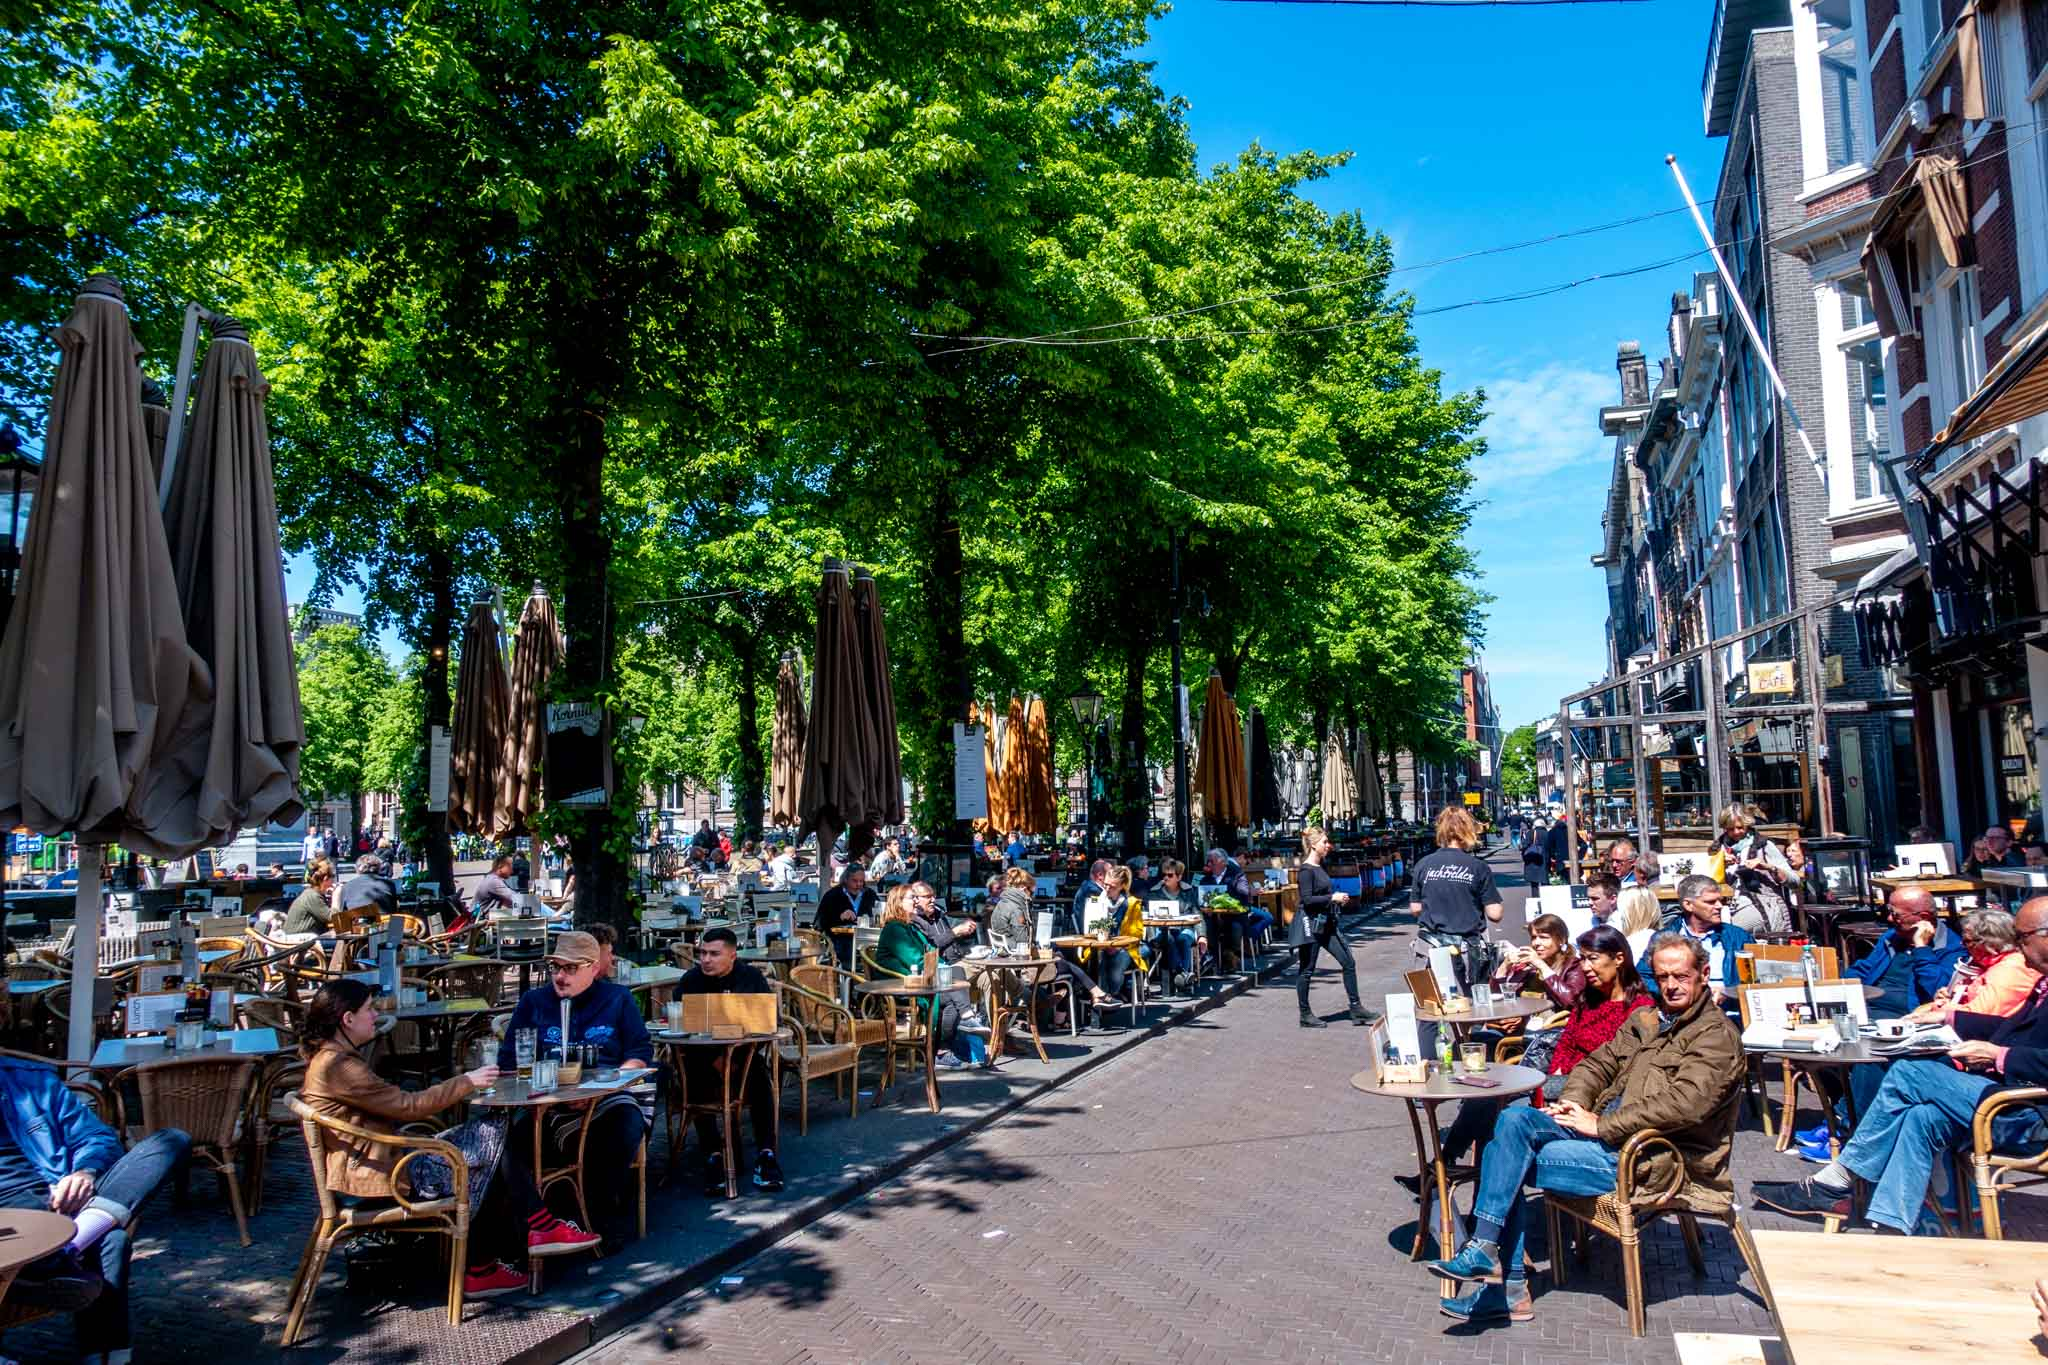 People at outdoor cafes on a tree-lined square